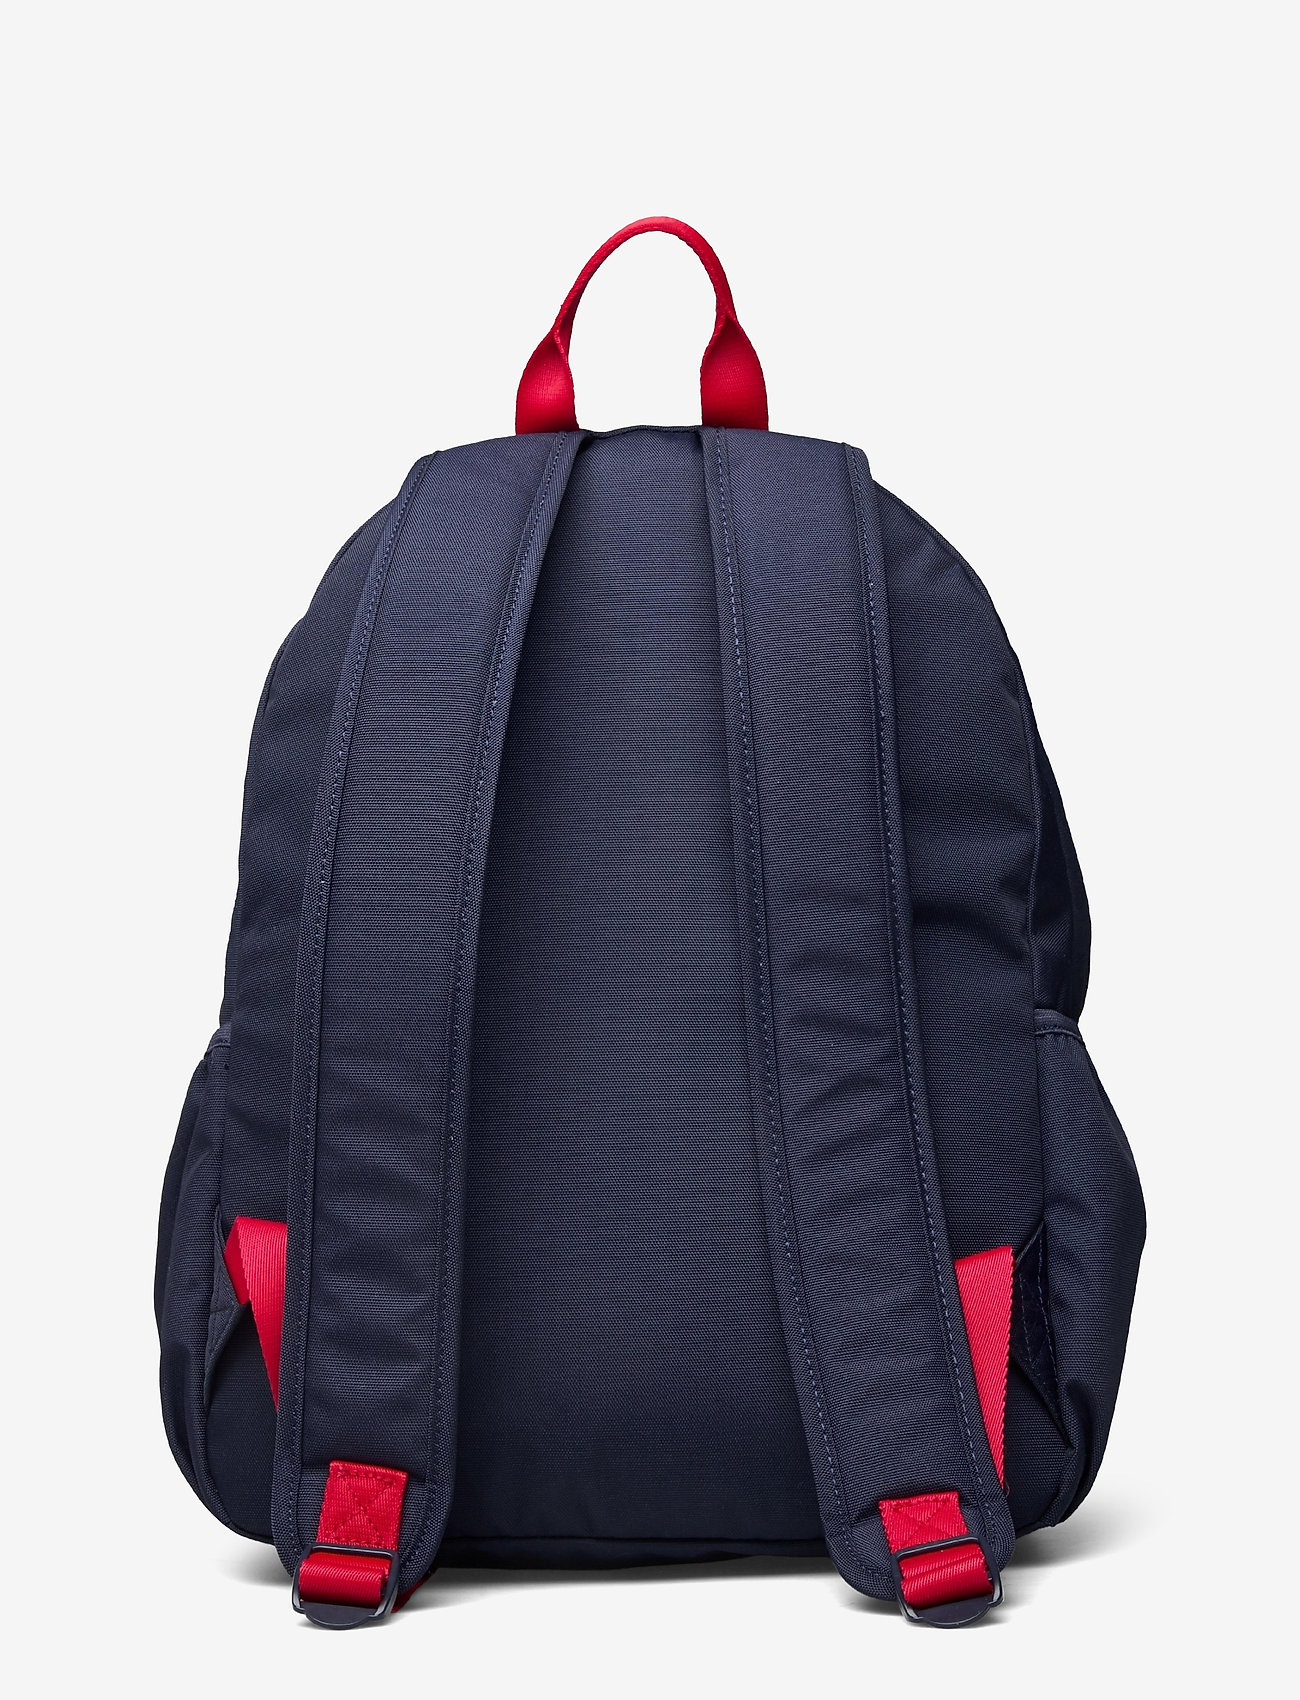 Tommy Hilfiger - CORE BACKPACK - backpacks - twilight navy - 1